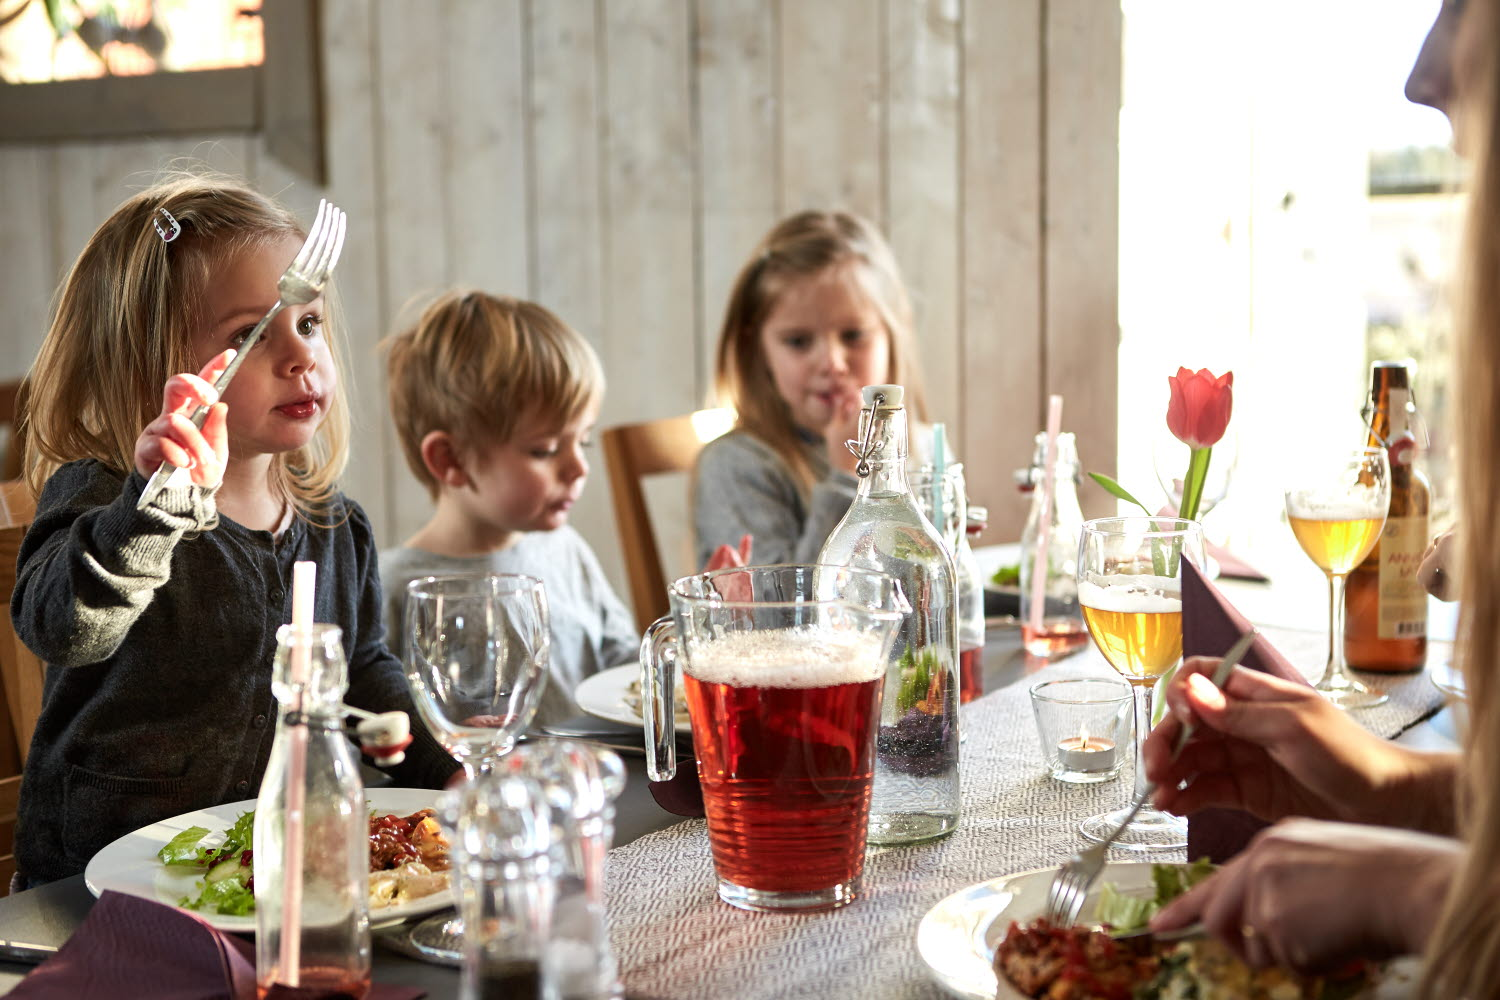 Children eating at Wrågården restaurant - Photo Cred Jonas Ingman